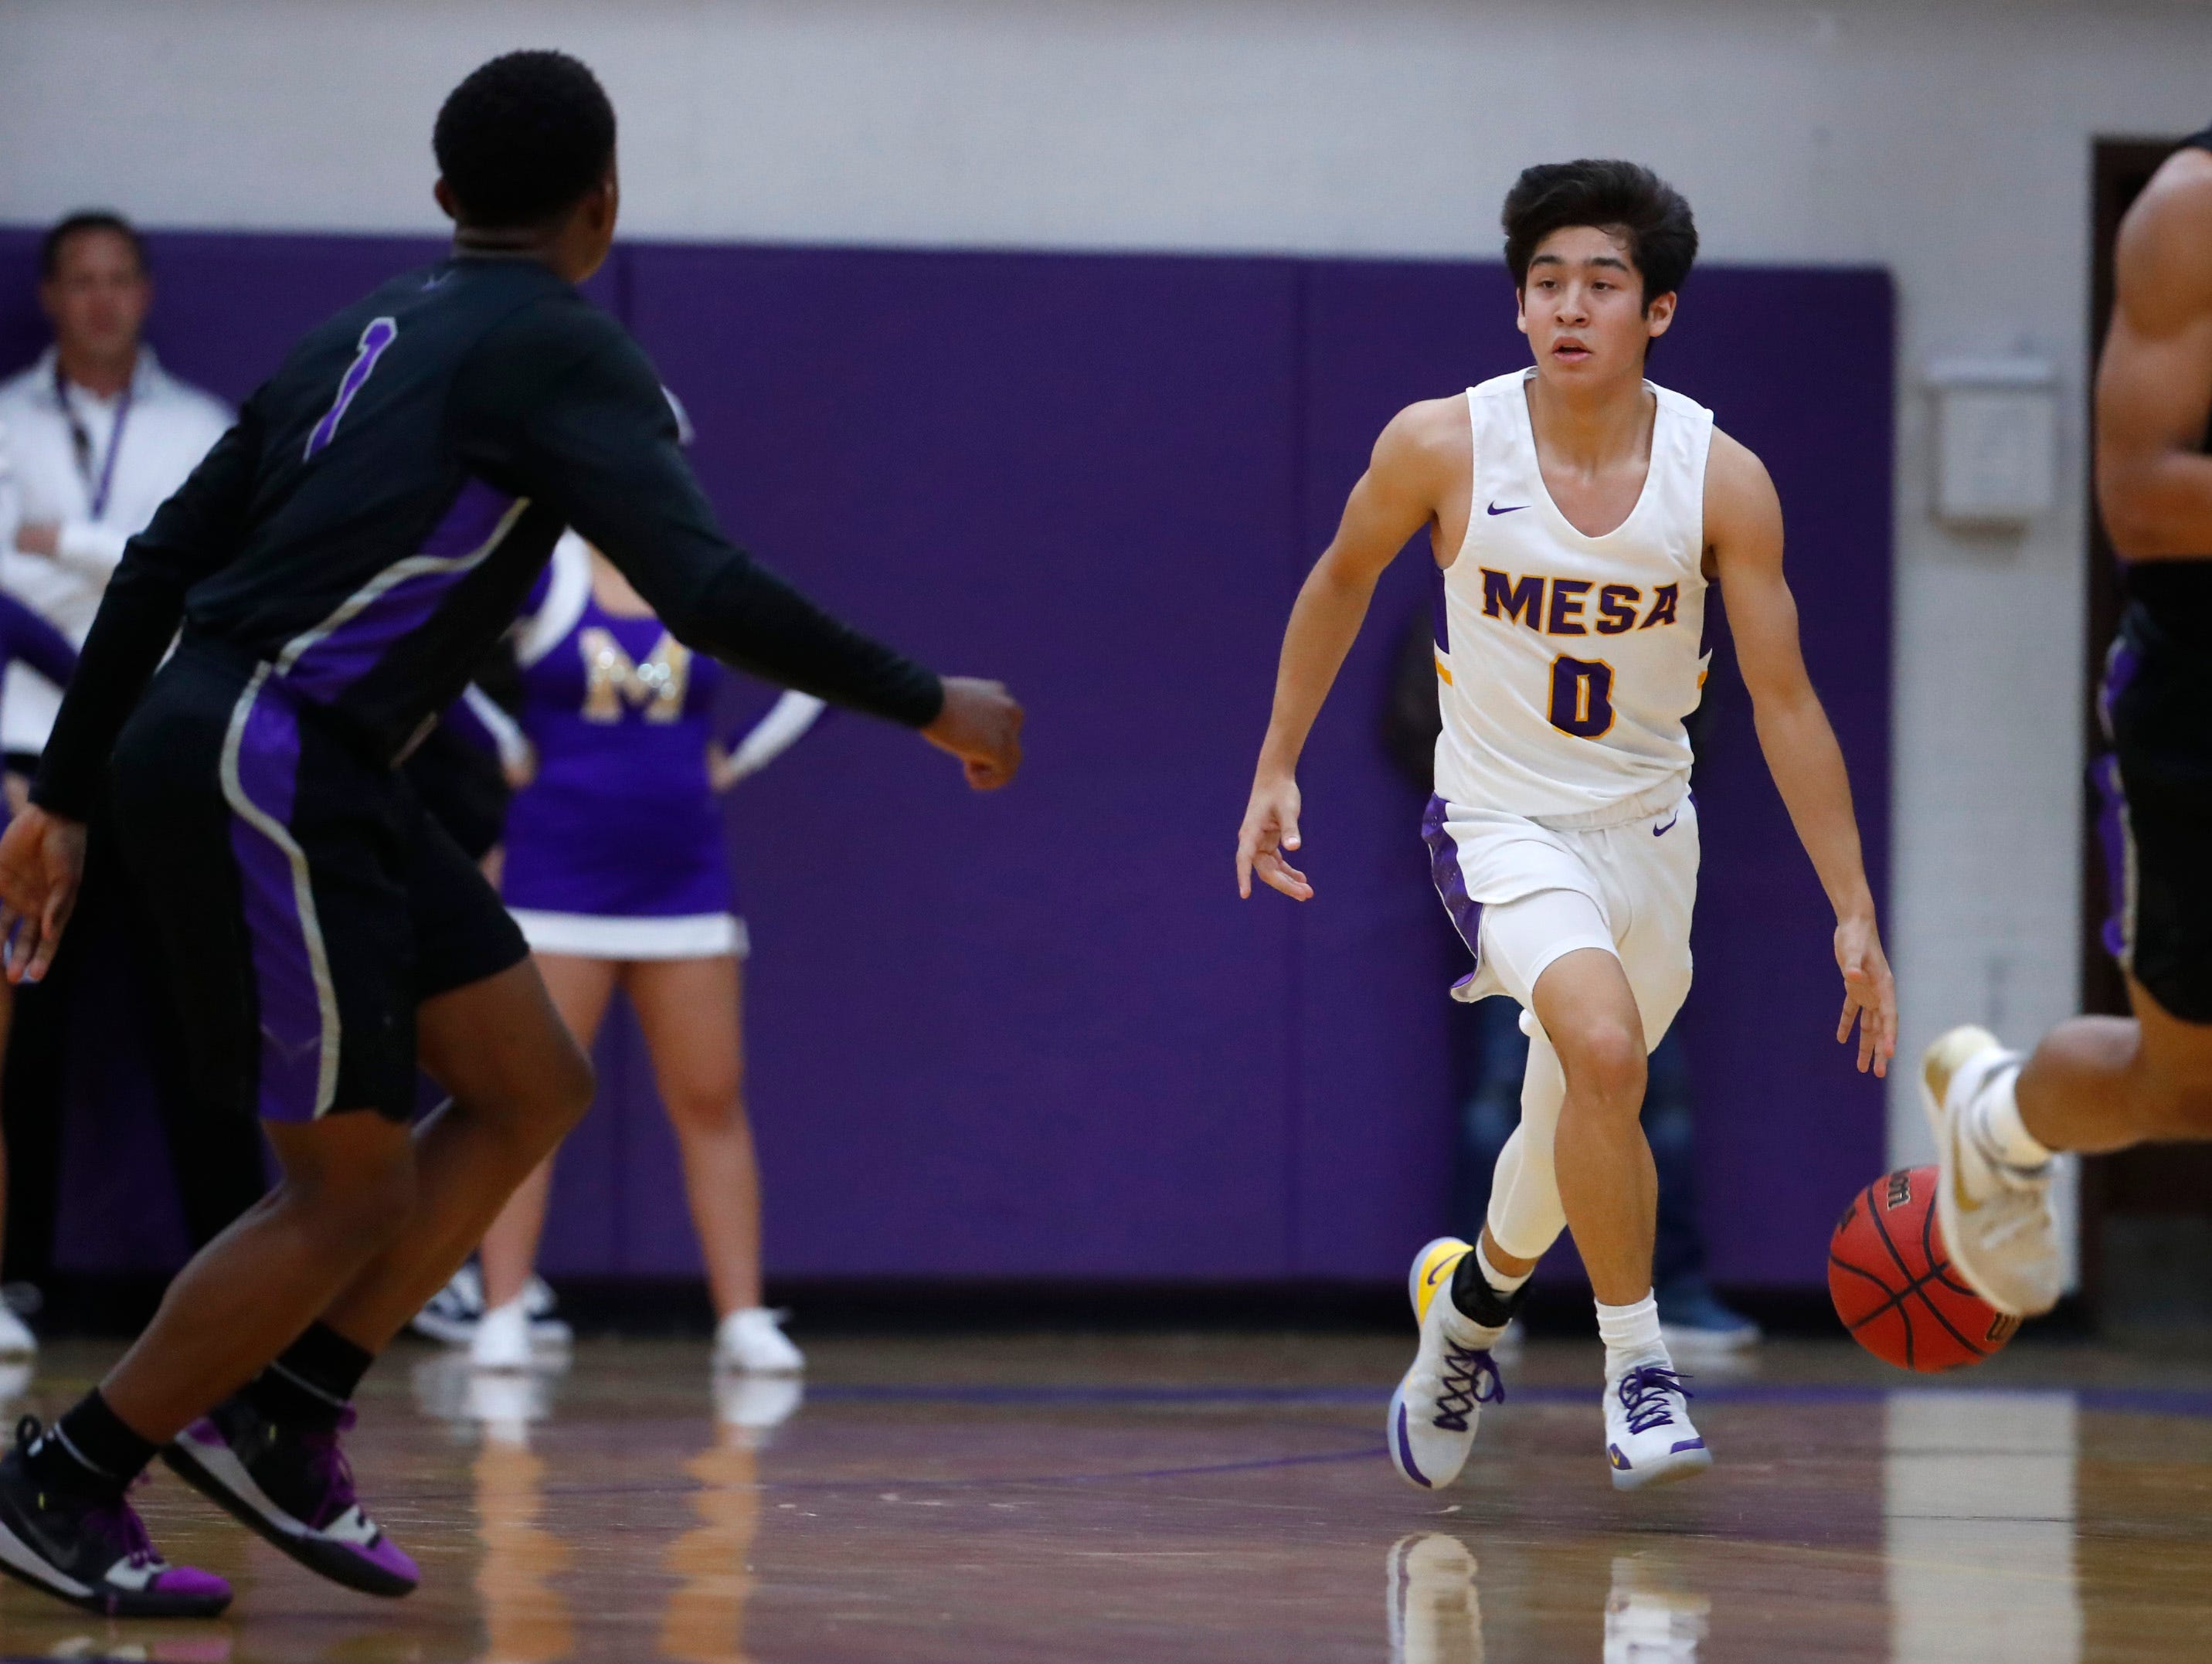 Mesa's Tony Adame (0) dribbles up court against Valley Vista during the first half of the boys basketball tournament play-in game at Mesa High School in Mesa, Ariz. on February 8, 2019.